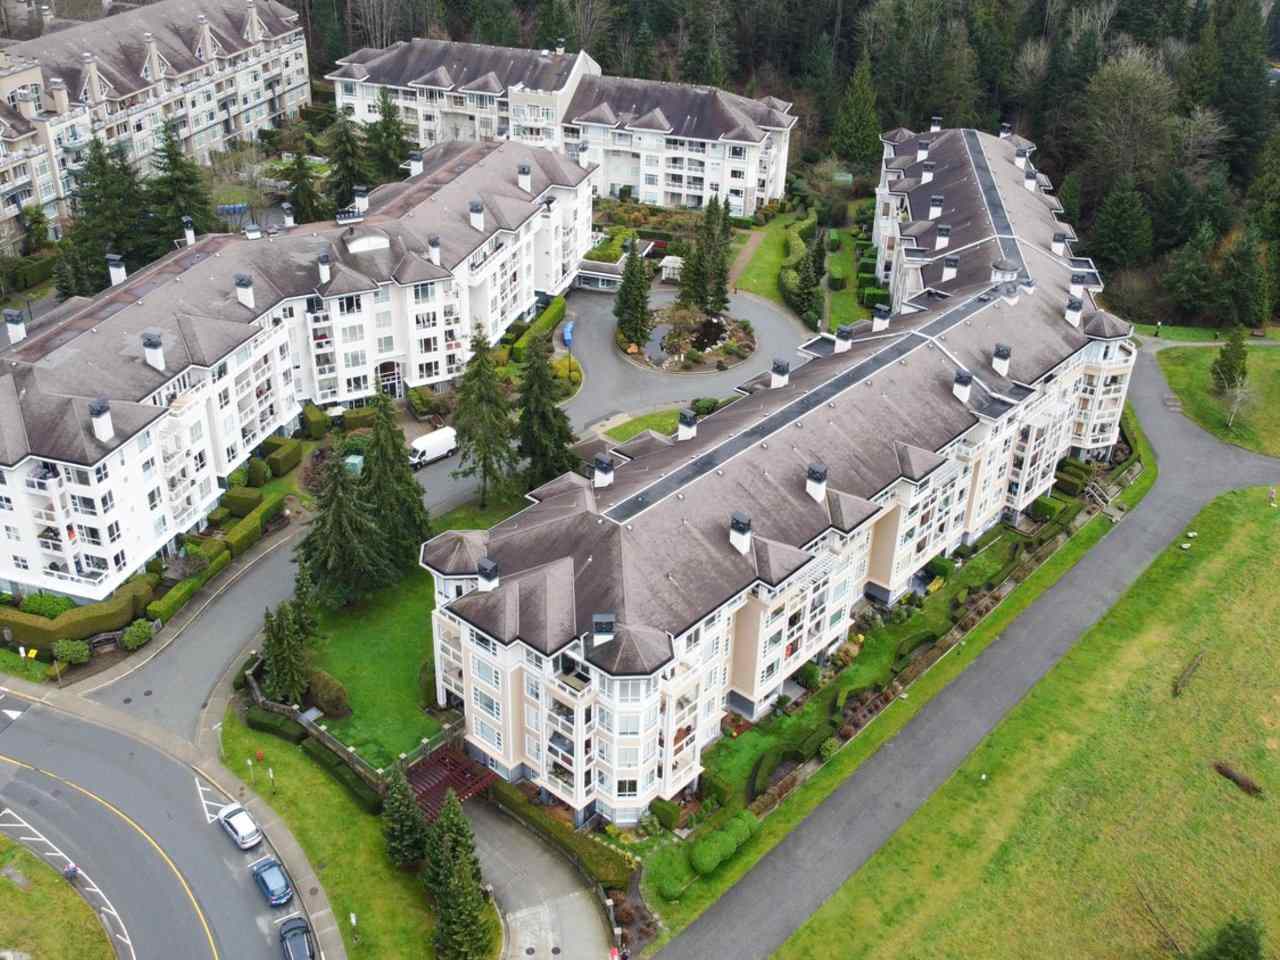 412 3629 DEERCREST DRIVE - Roche Point Apartment/Condo for sale, 1 Bedroom (R2525424) - #39